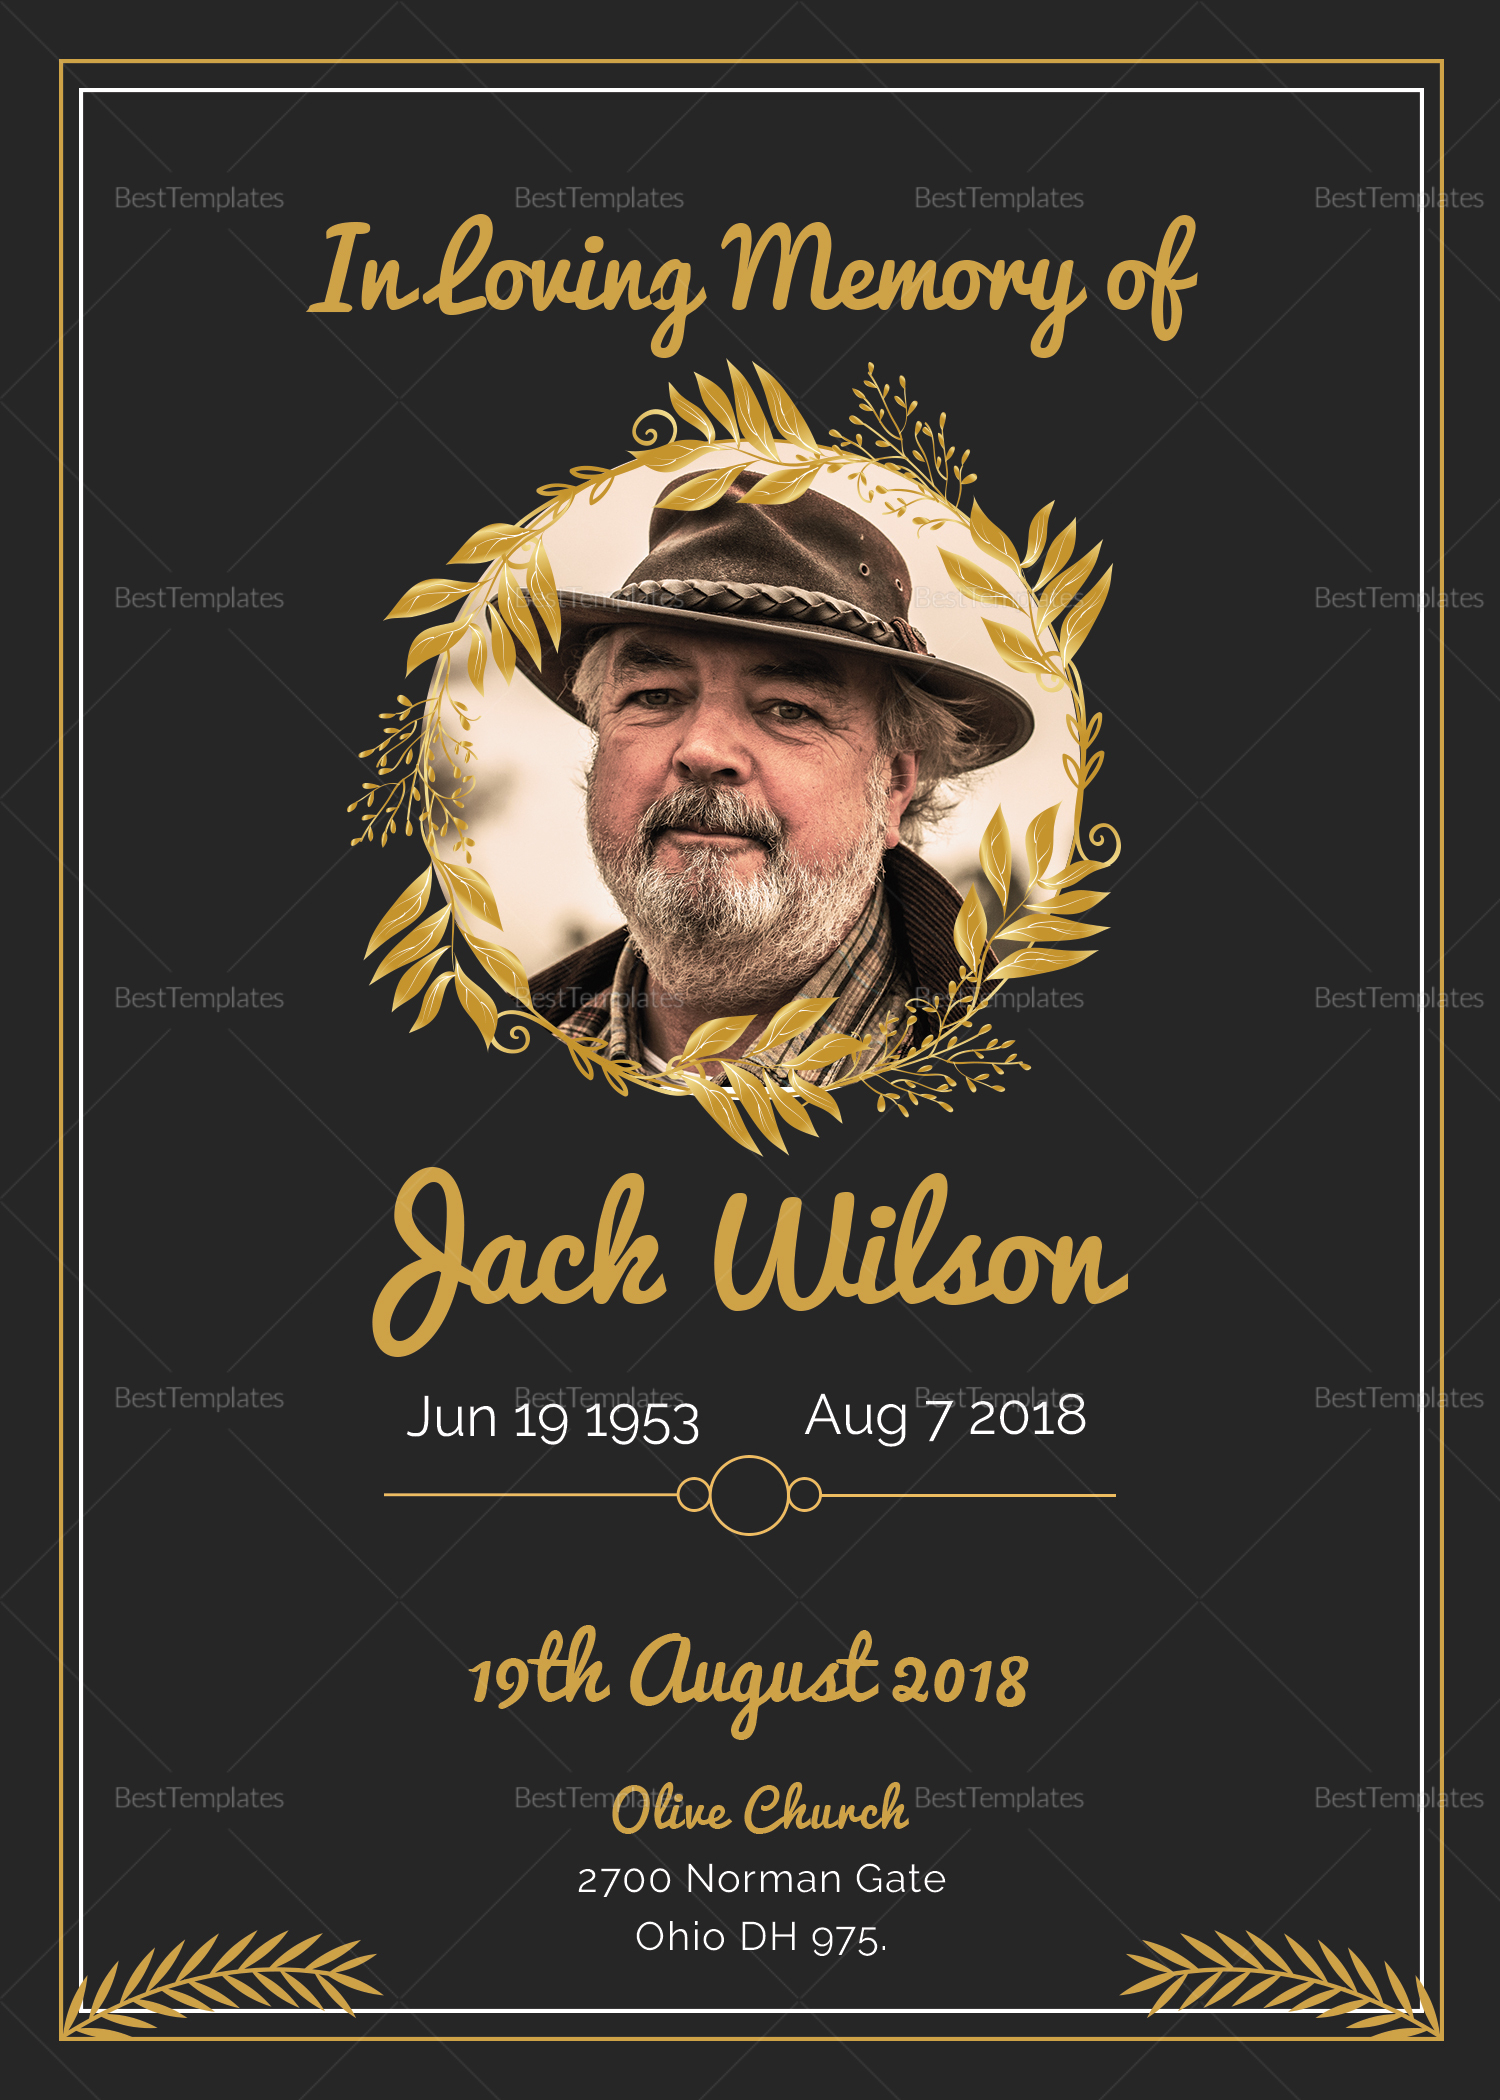 Funeral Invitation Card Design